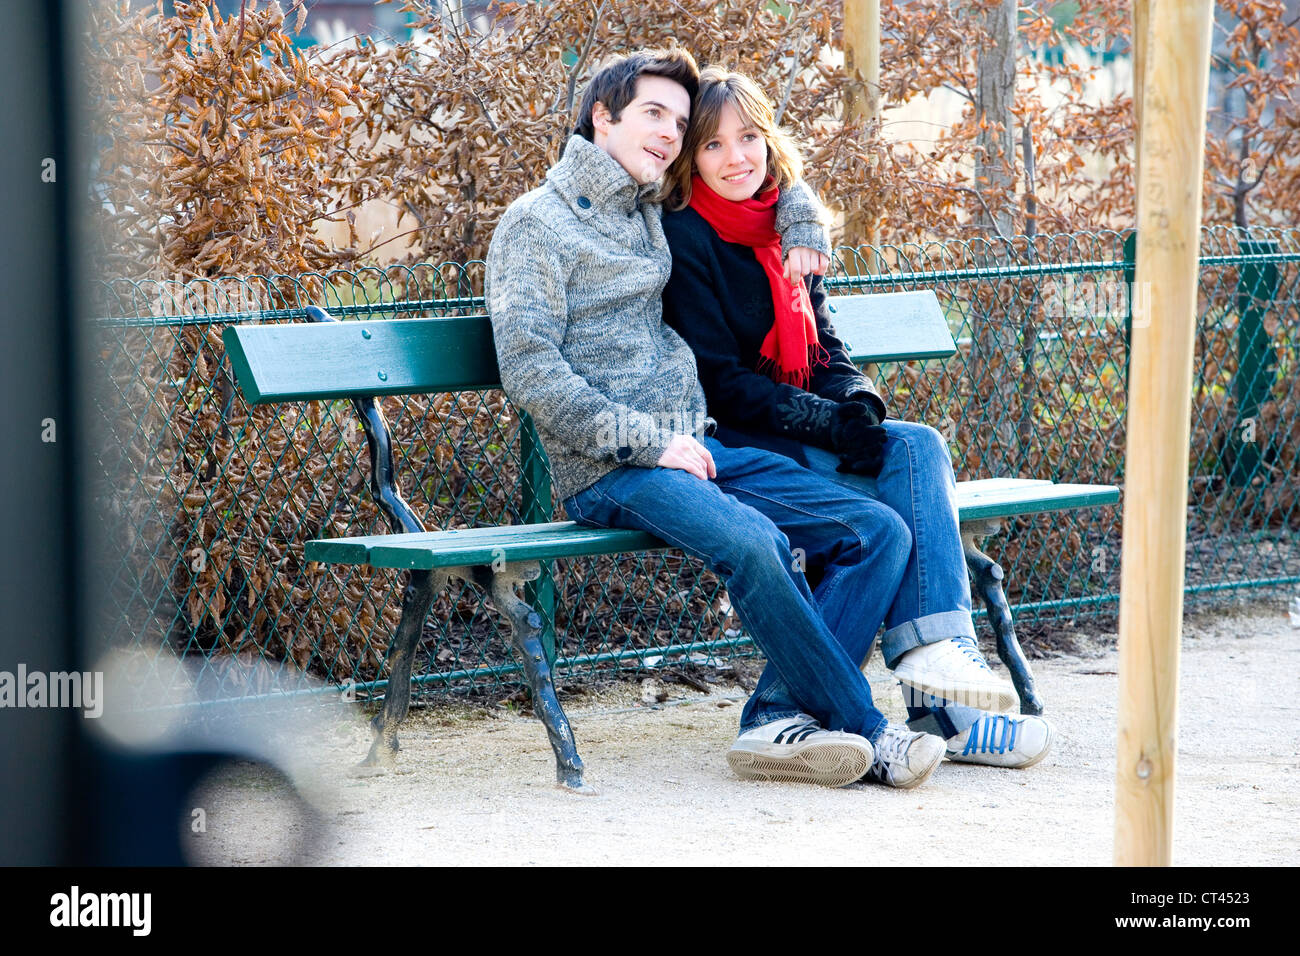 COUPLE IN THEIR 20S, OUTSIDE - Stock Image